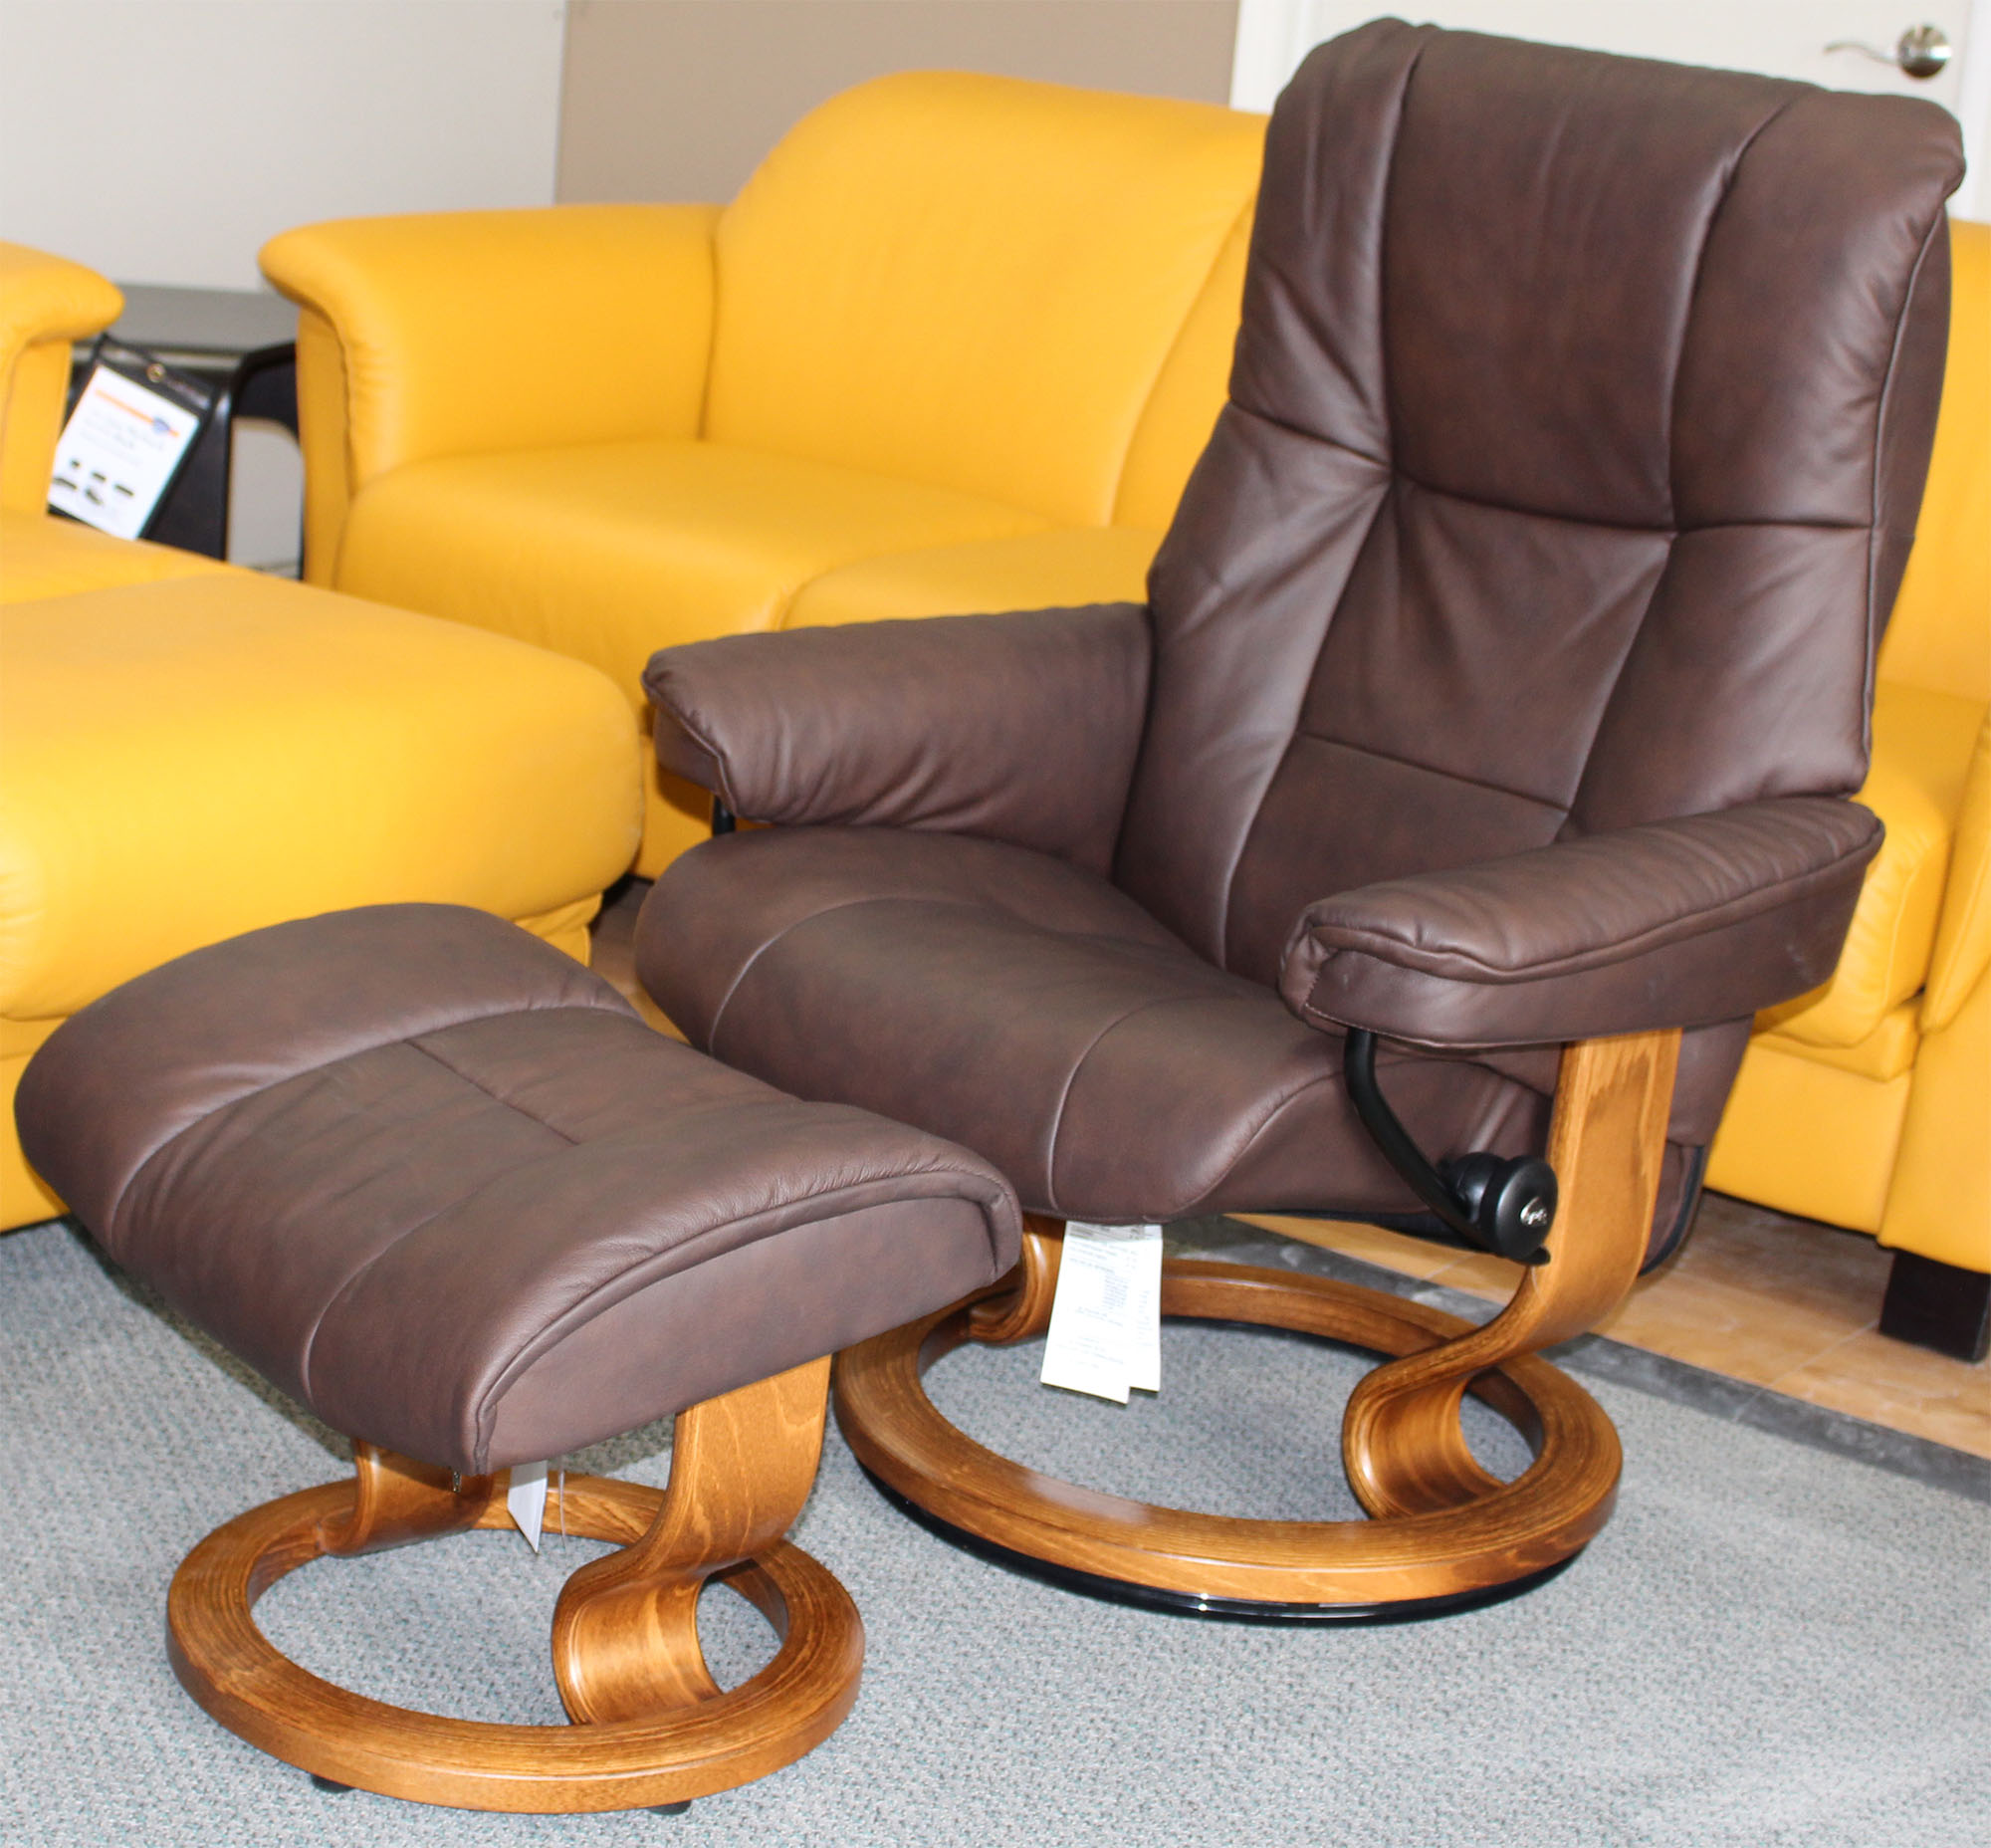 stressless mayfair paloma chocolate leather recliner chair and